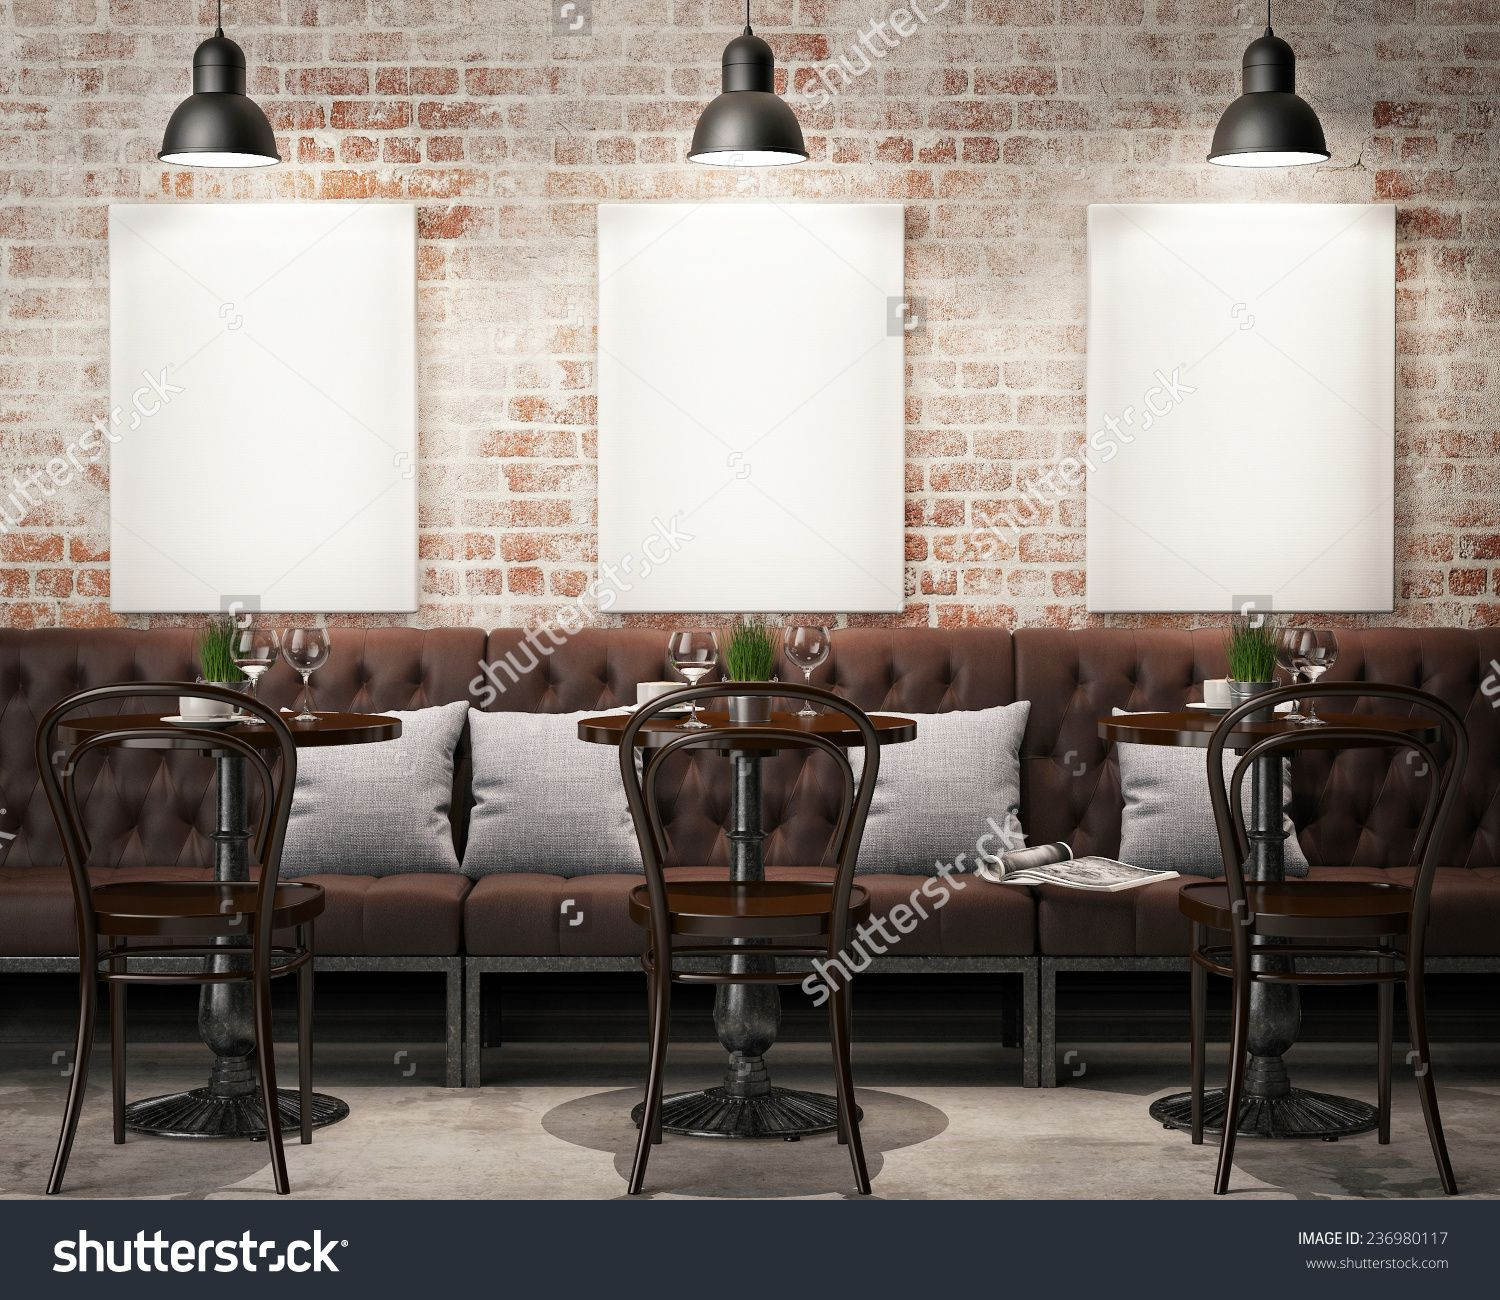 Image Result For Background For Interior Renderings With Images Restaurant Interior Hipster Interior Cafe Interior